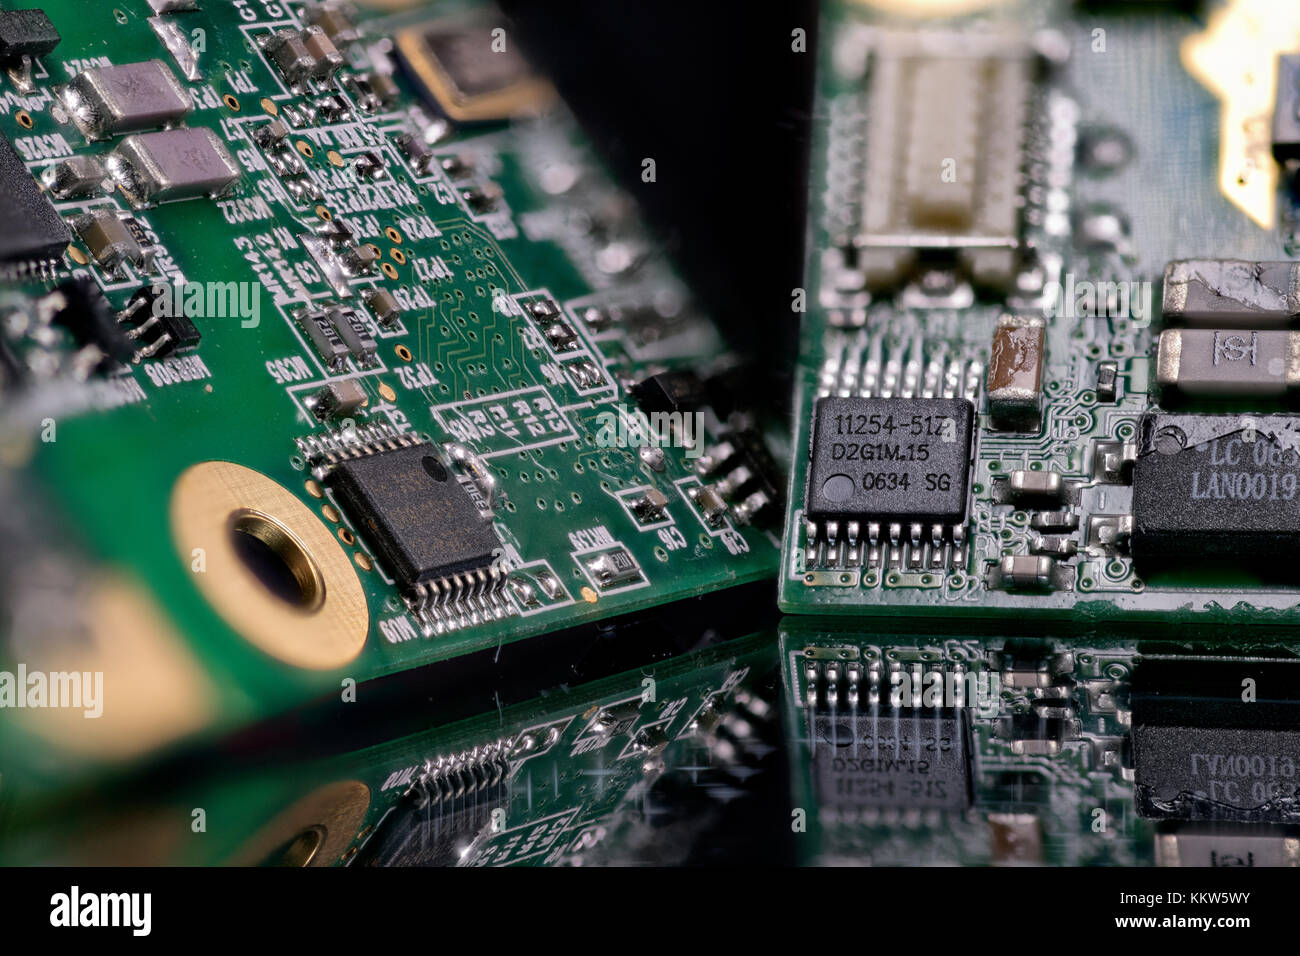 Circuit Boards Stock Photos Images Alamy Pcb Recycling Machine Gt Waste Printed Board Image